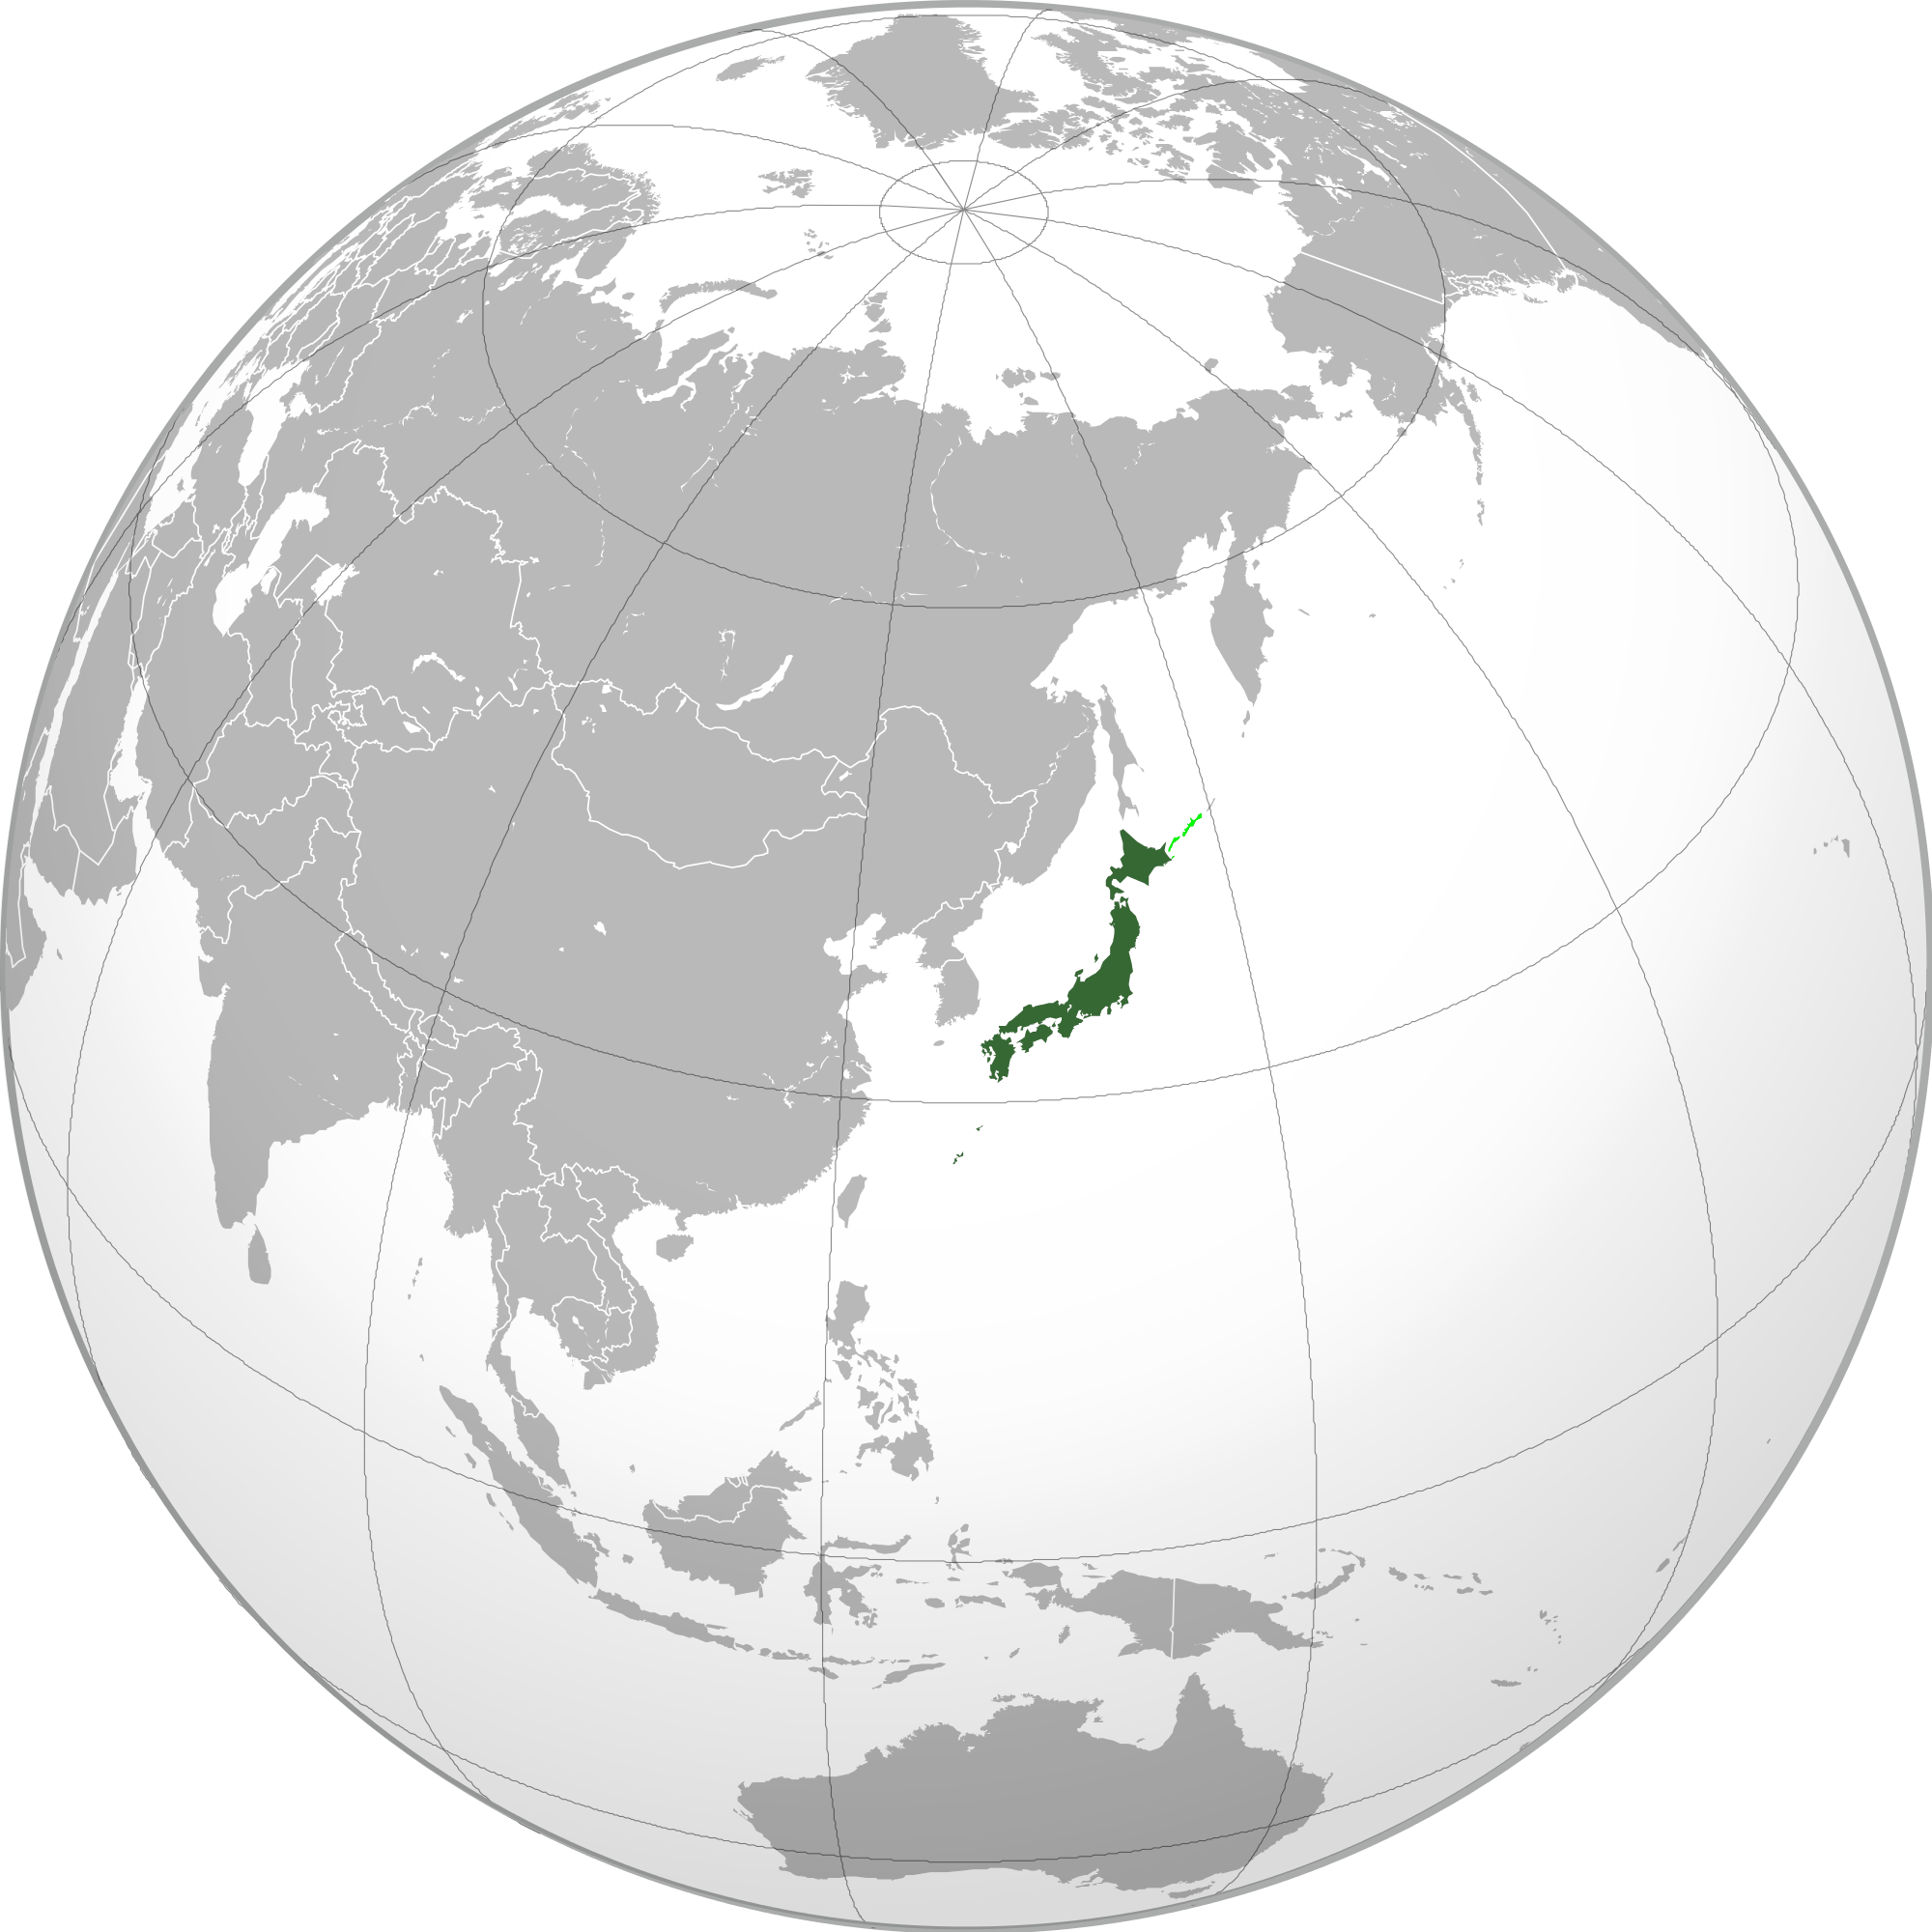 Location of the Japan in the World Map